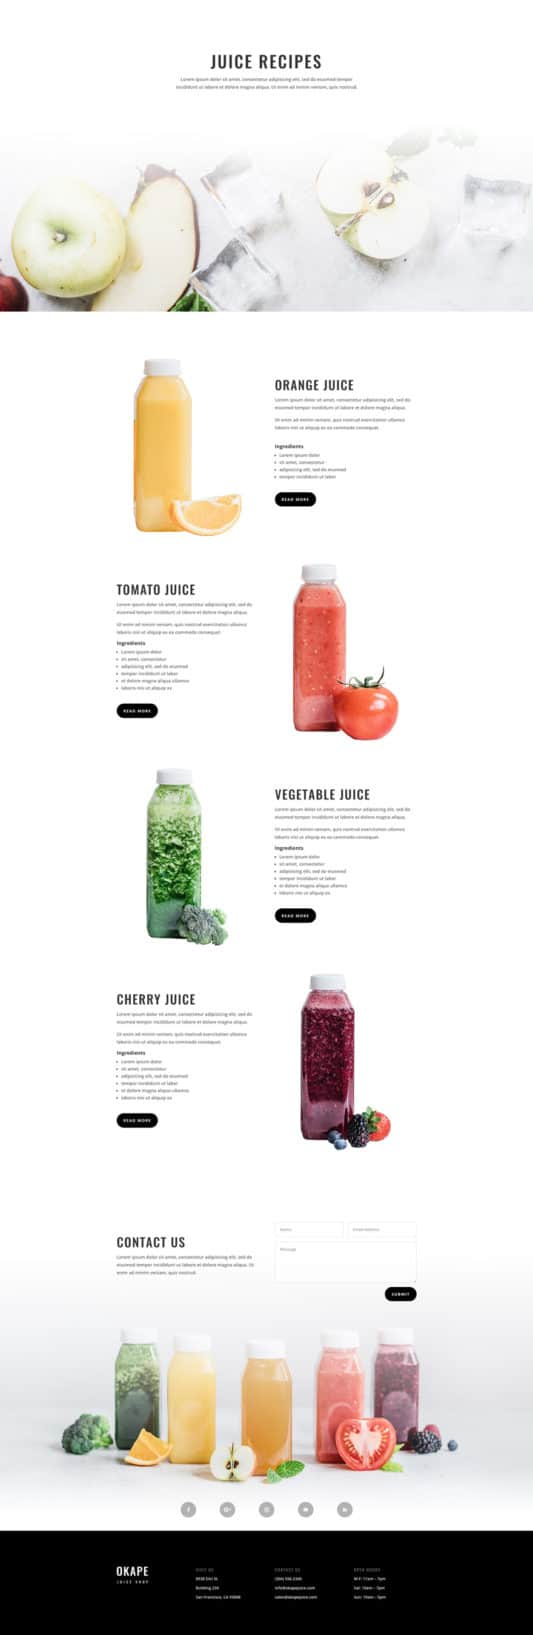 Juice Shop Web Design 7